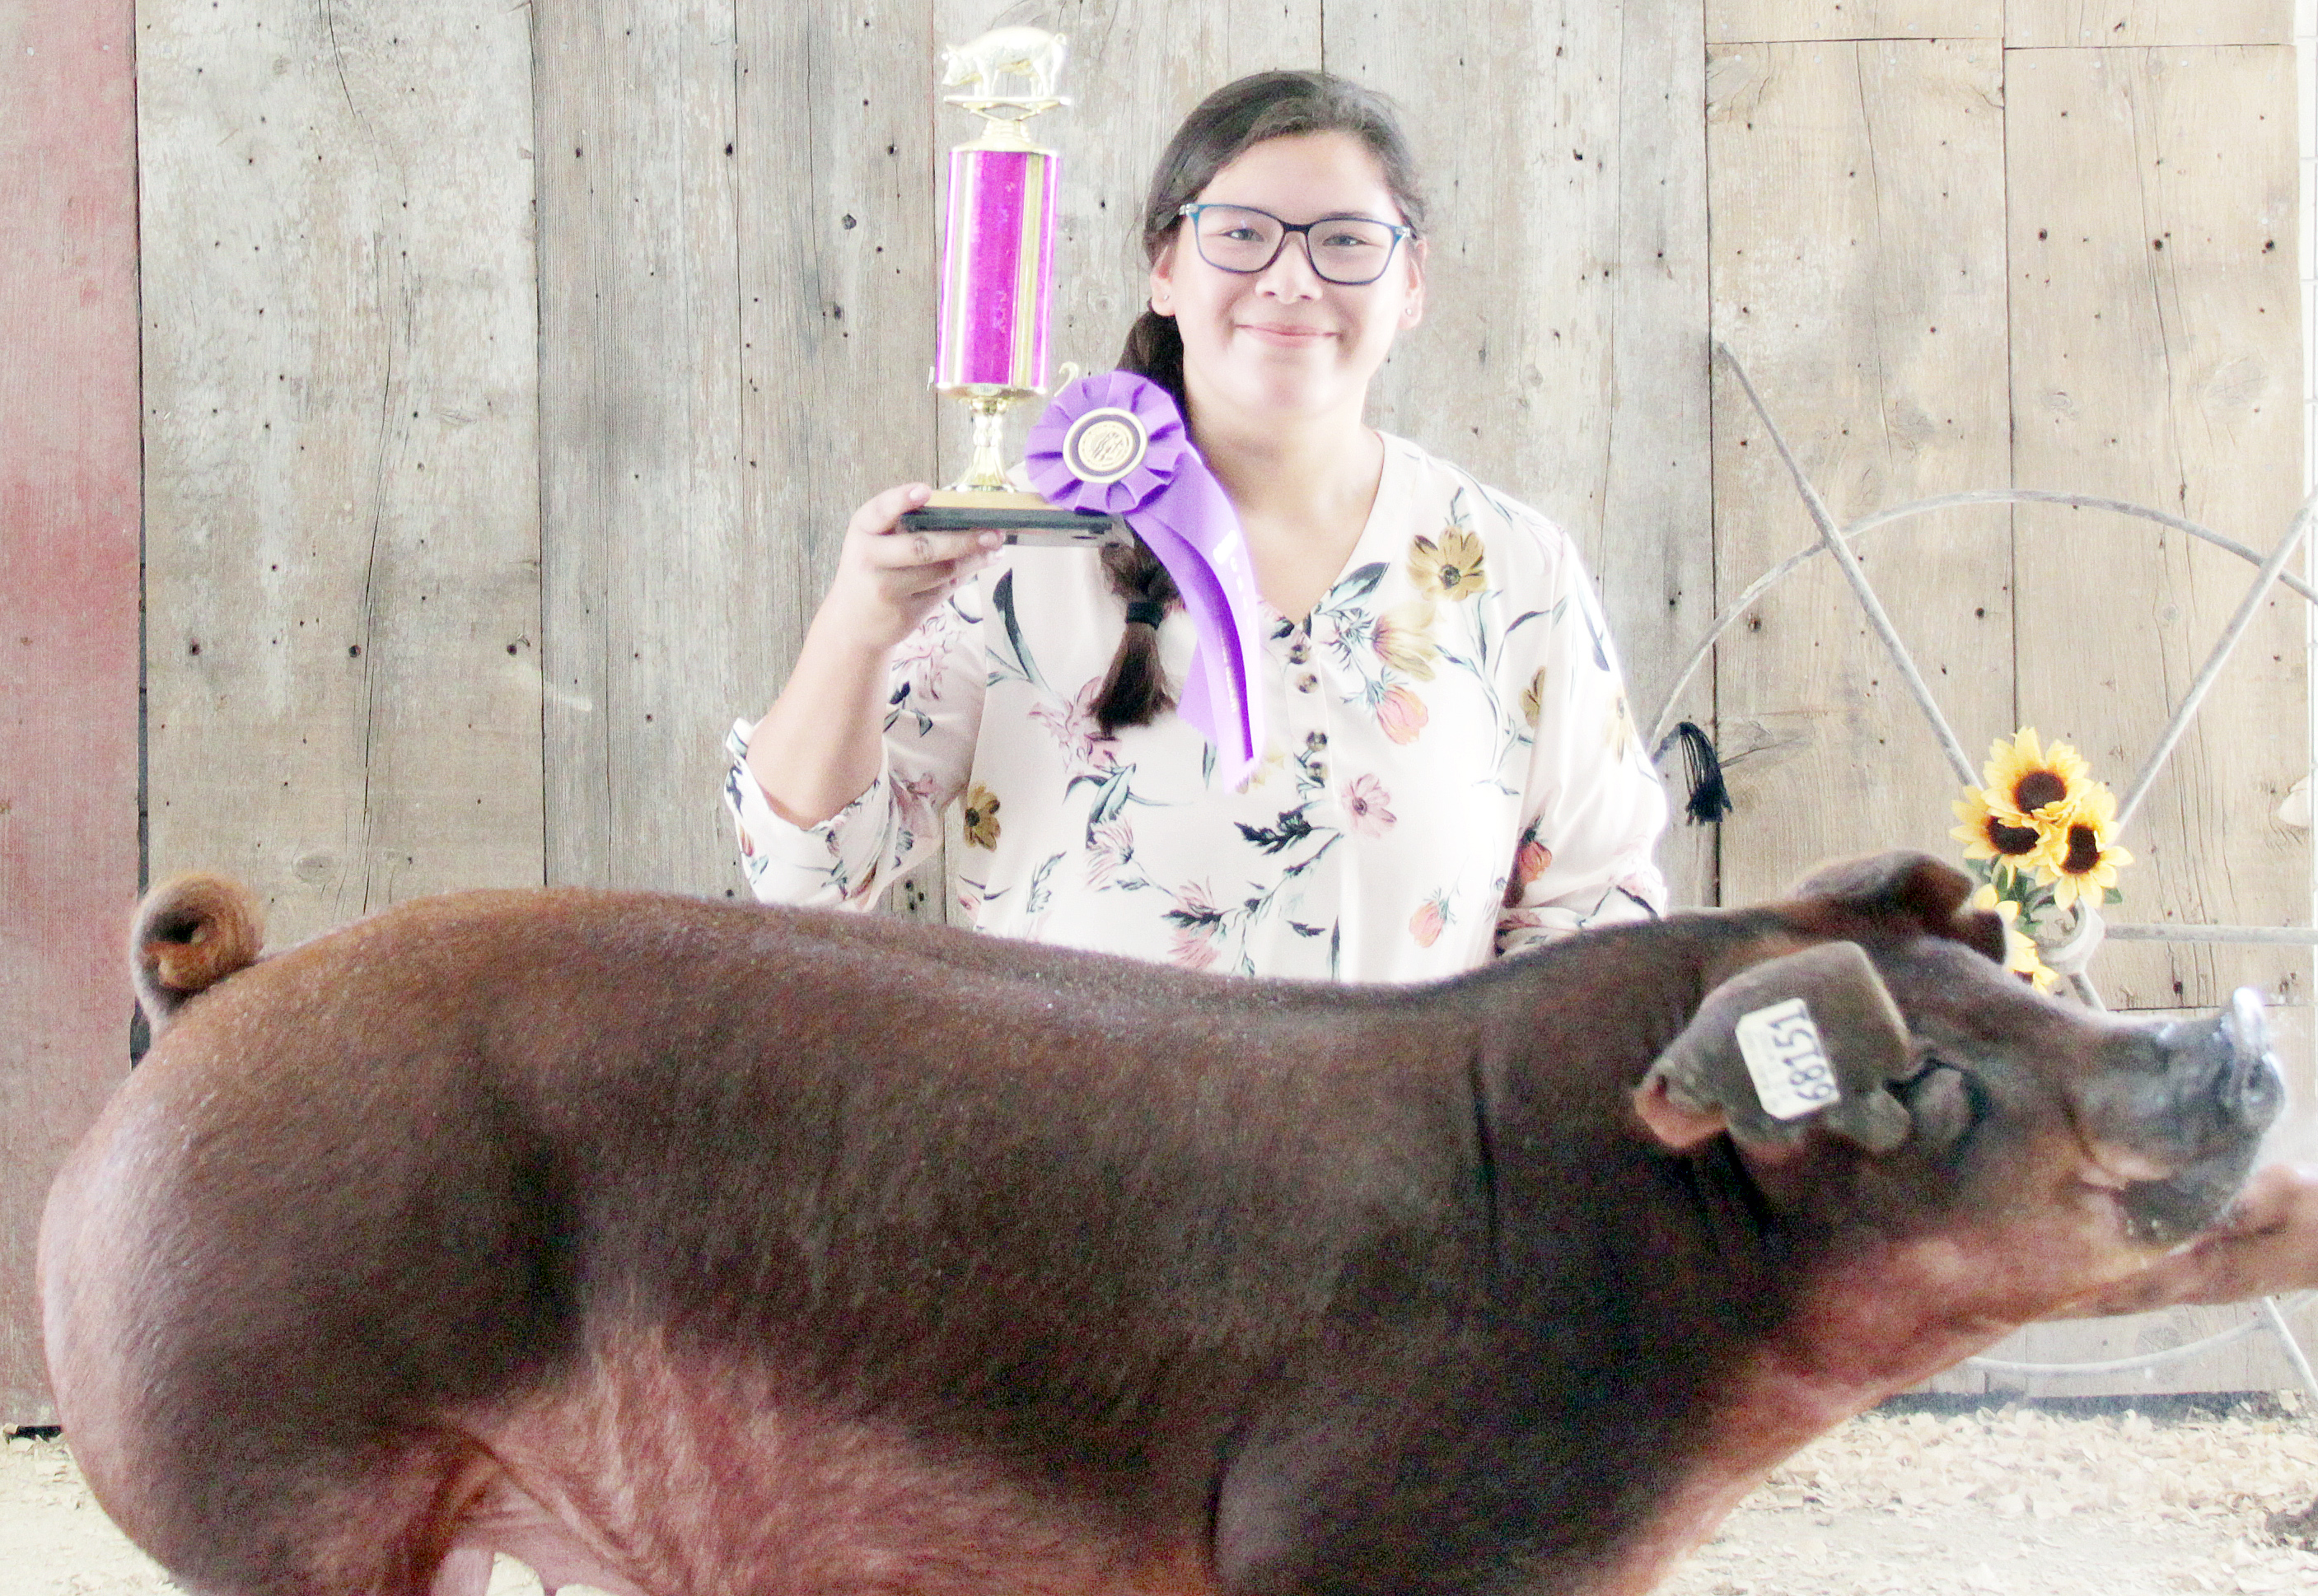 Kailei Mitchell of the Mayetta Mustangs 4-H Club was named Champion senior hog showman at the 2020 Jackson County Fair.